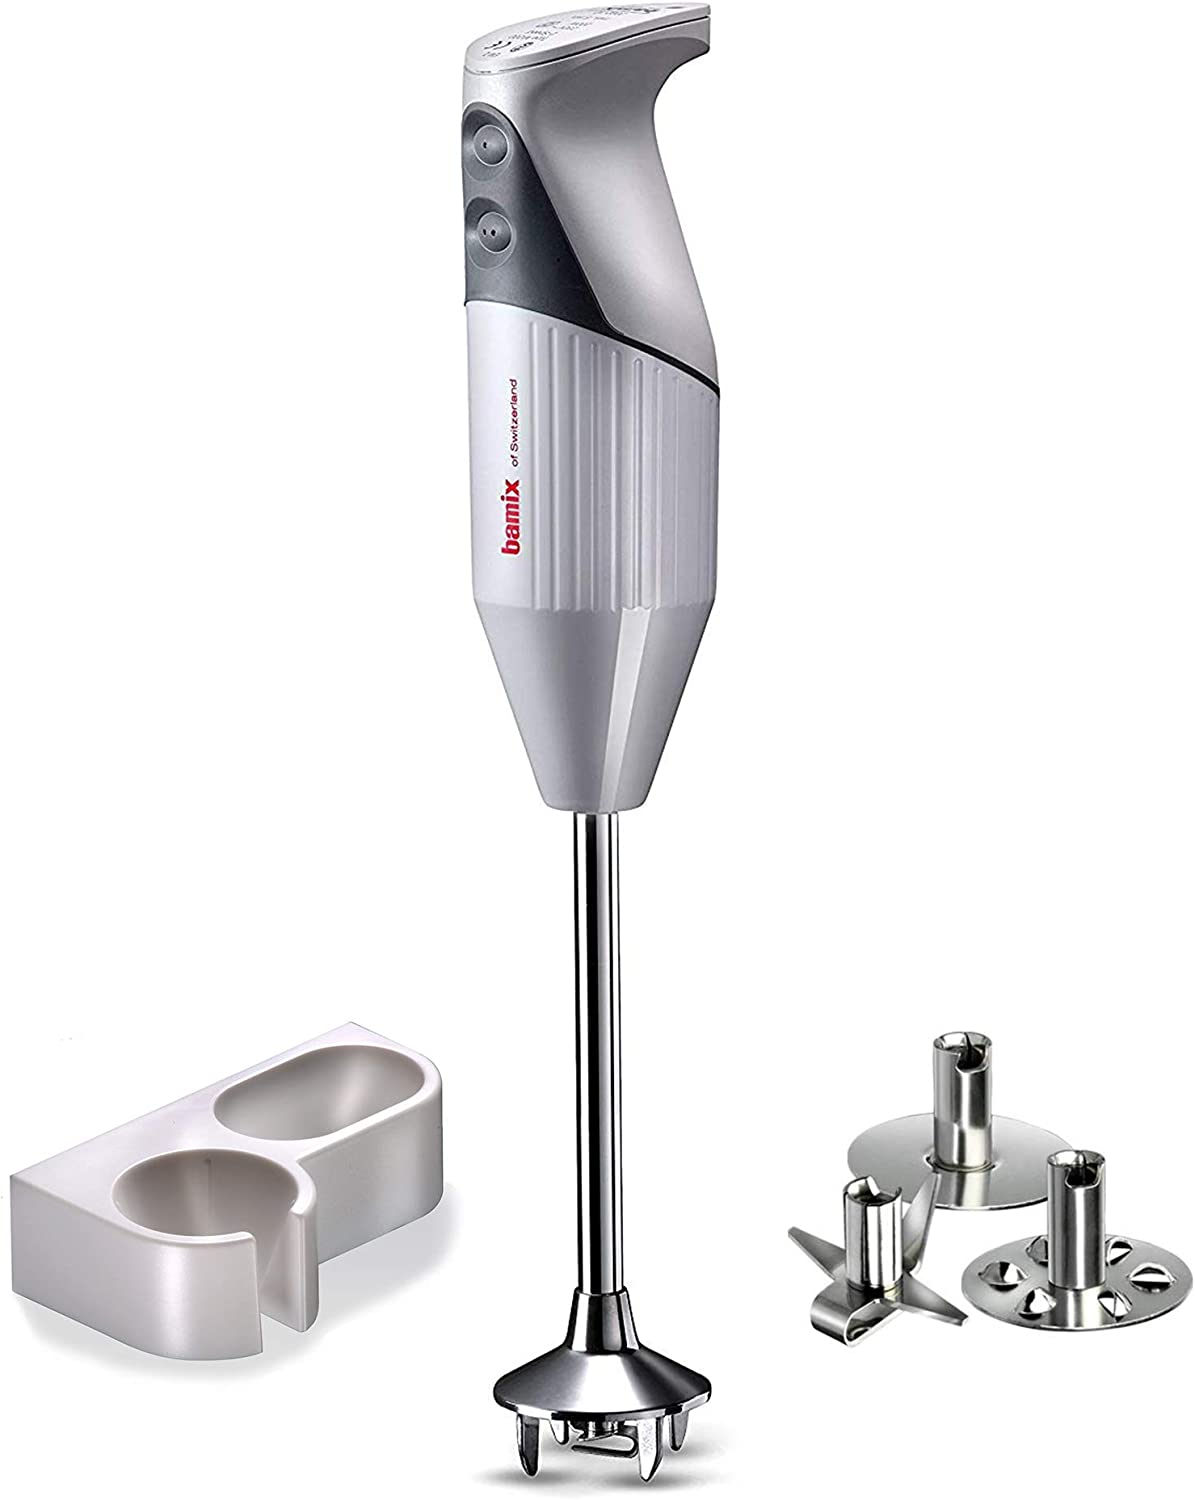 Bamix G200 Gastro Pro-2 NSF Professional Immersion Hand Blender – Light Grey – 200W 120V 60Hz with US-plug – 3 Stainless Steel Blades – NSF Rated for Professional Cooking Projects